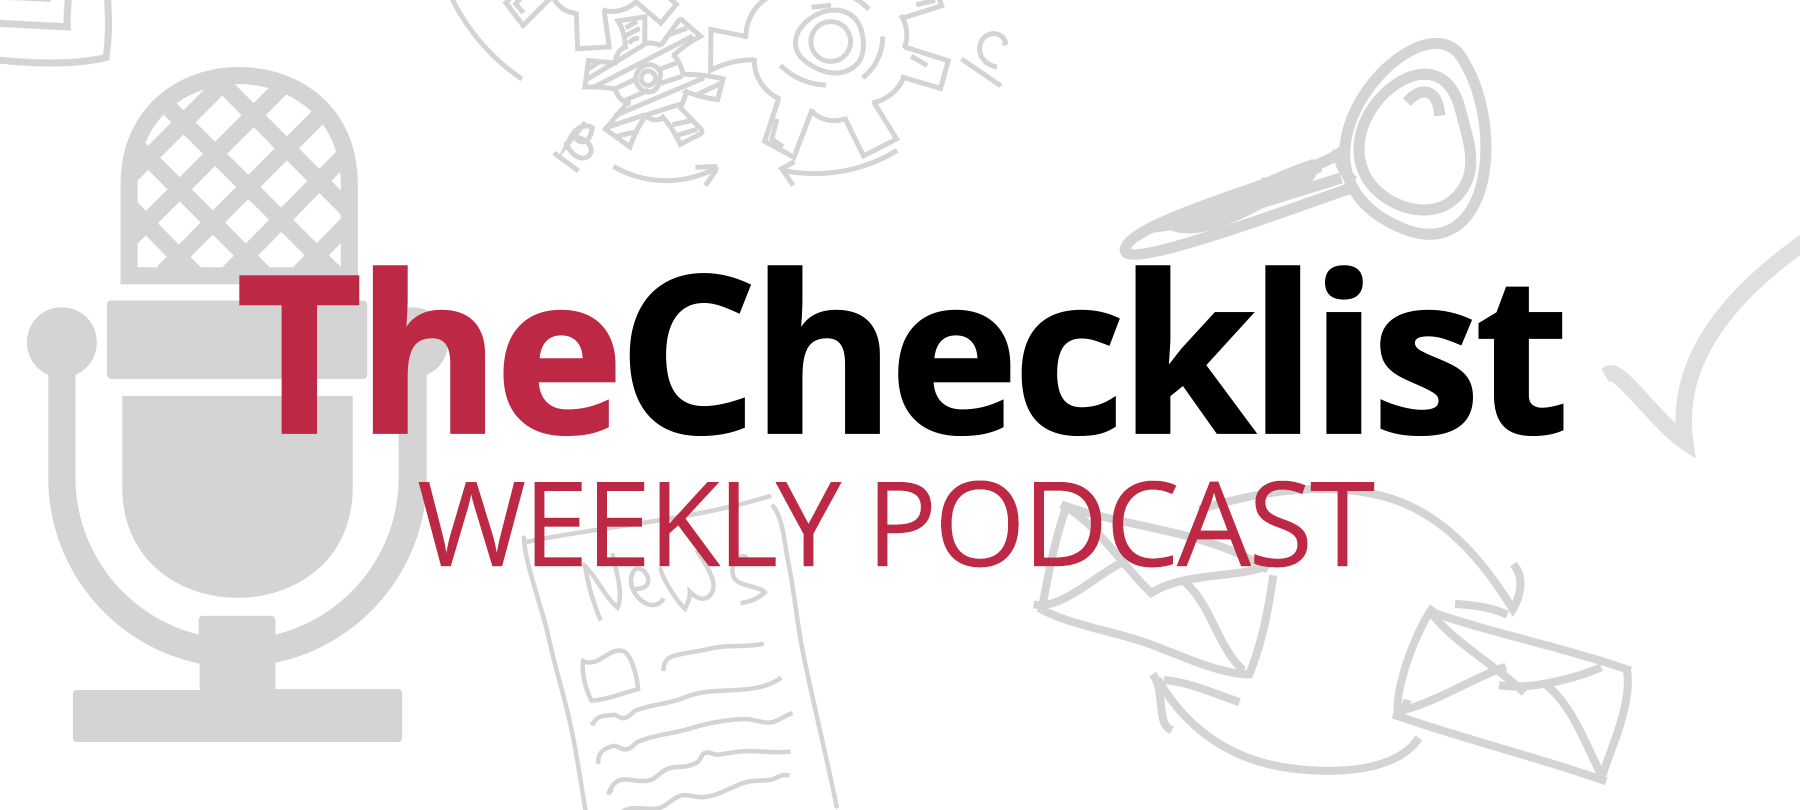 Episode: SecureMac Celebrates Two Years of The Checklist Podcast